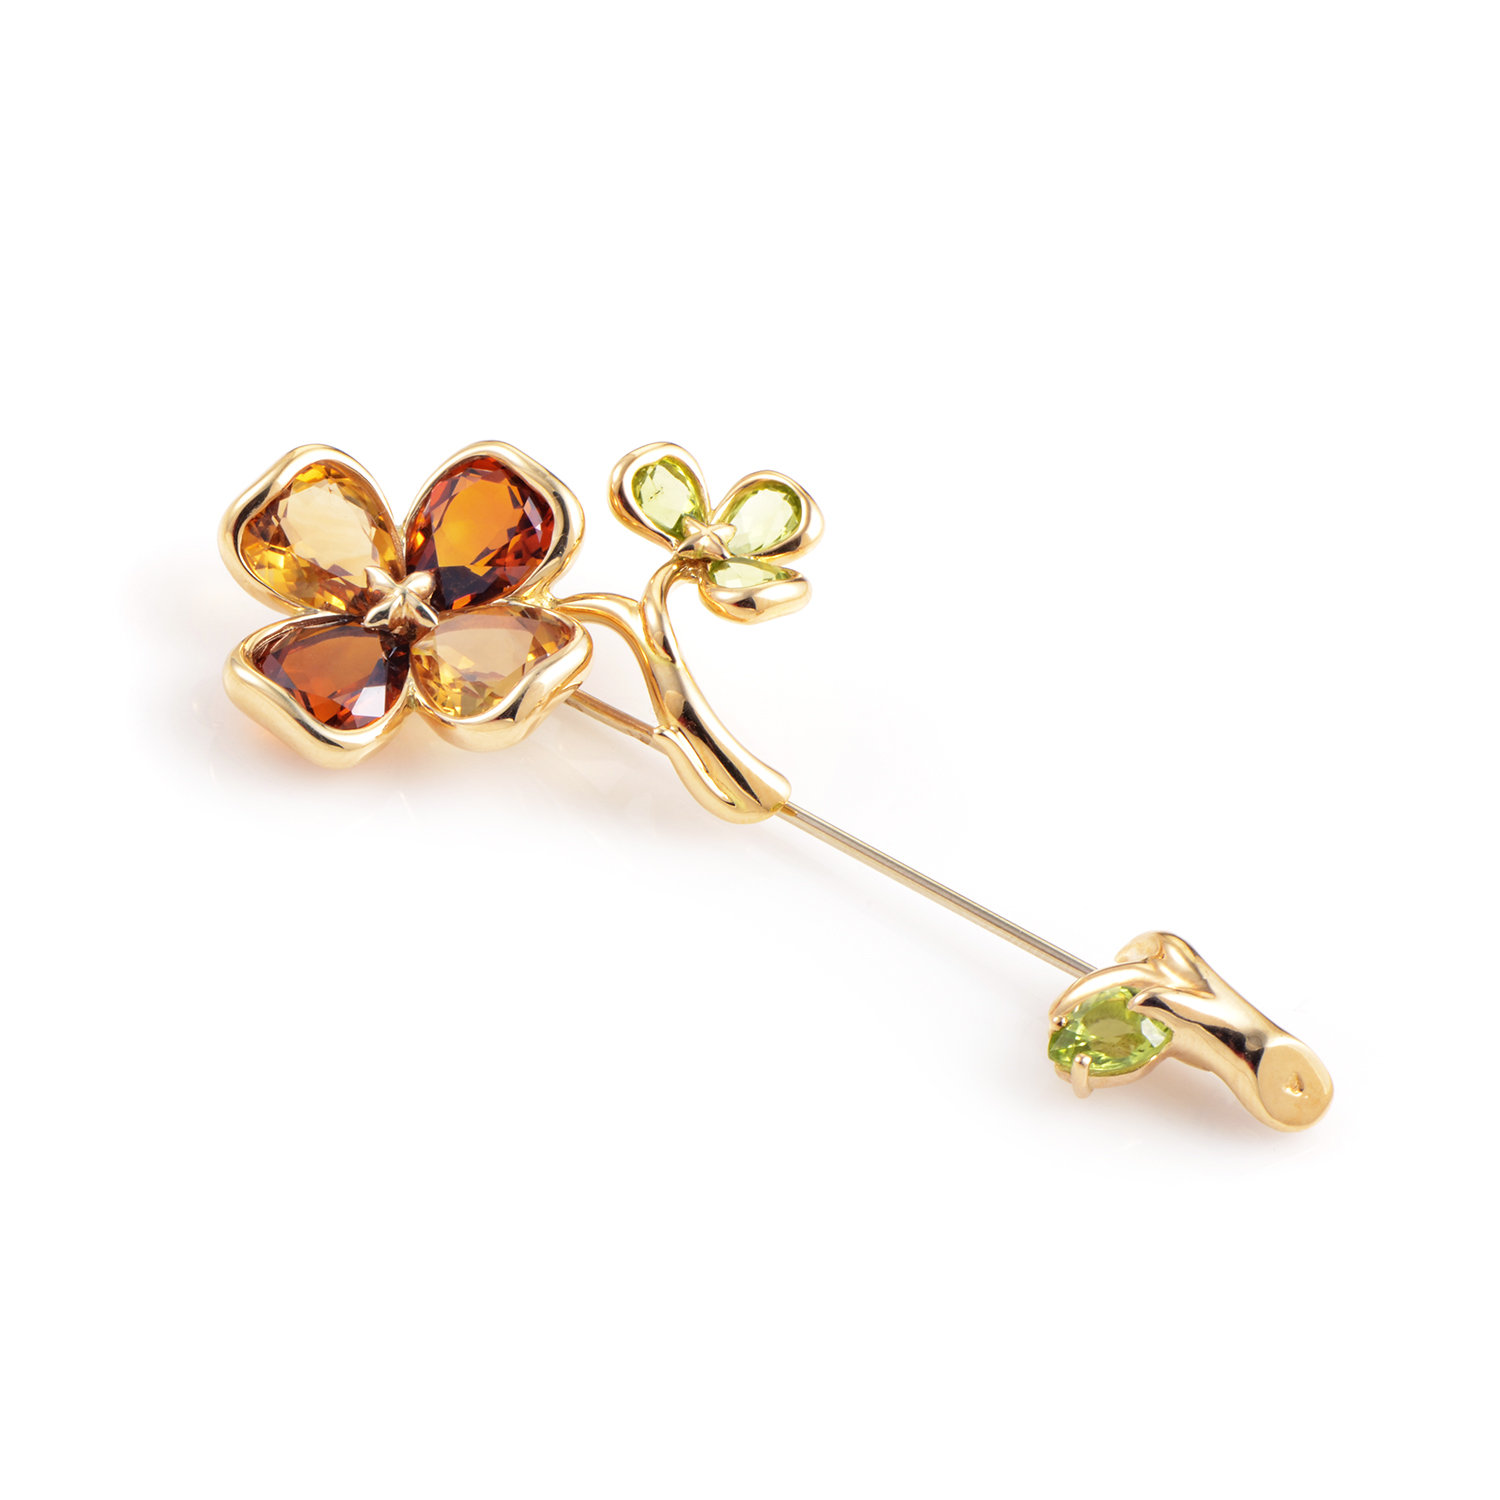 Chanel Women's 18K Yellow Gold Floral Gemstone Pin